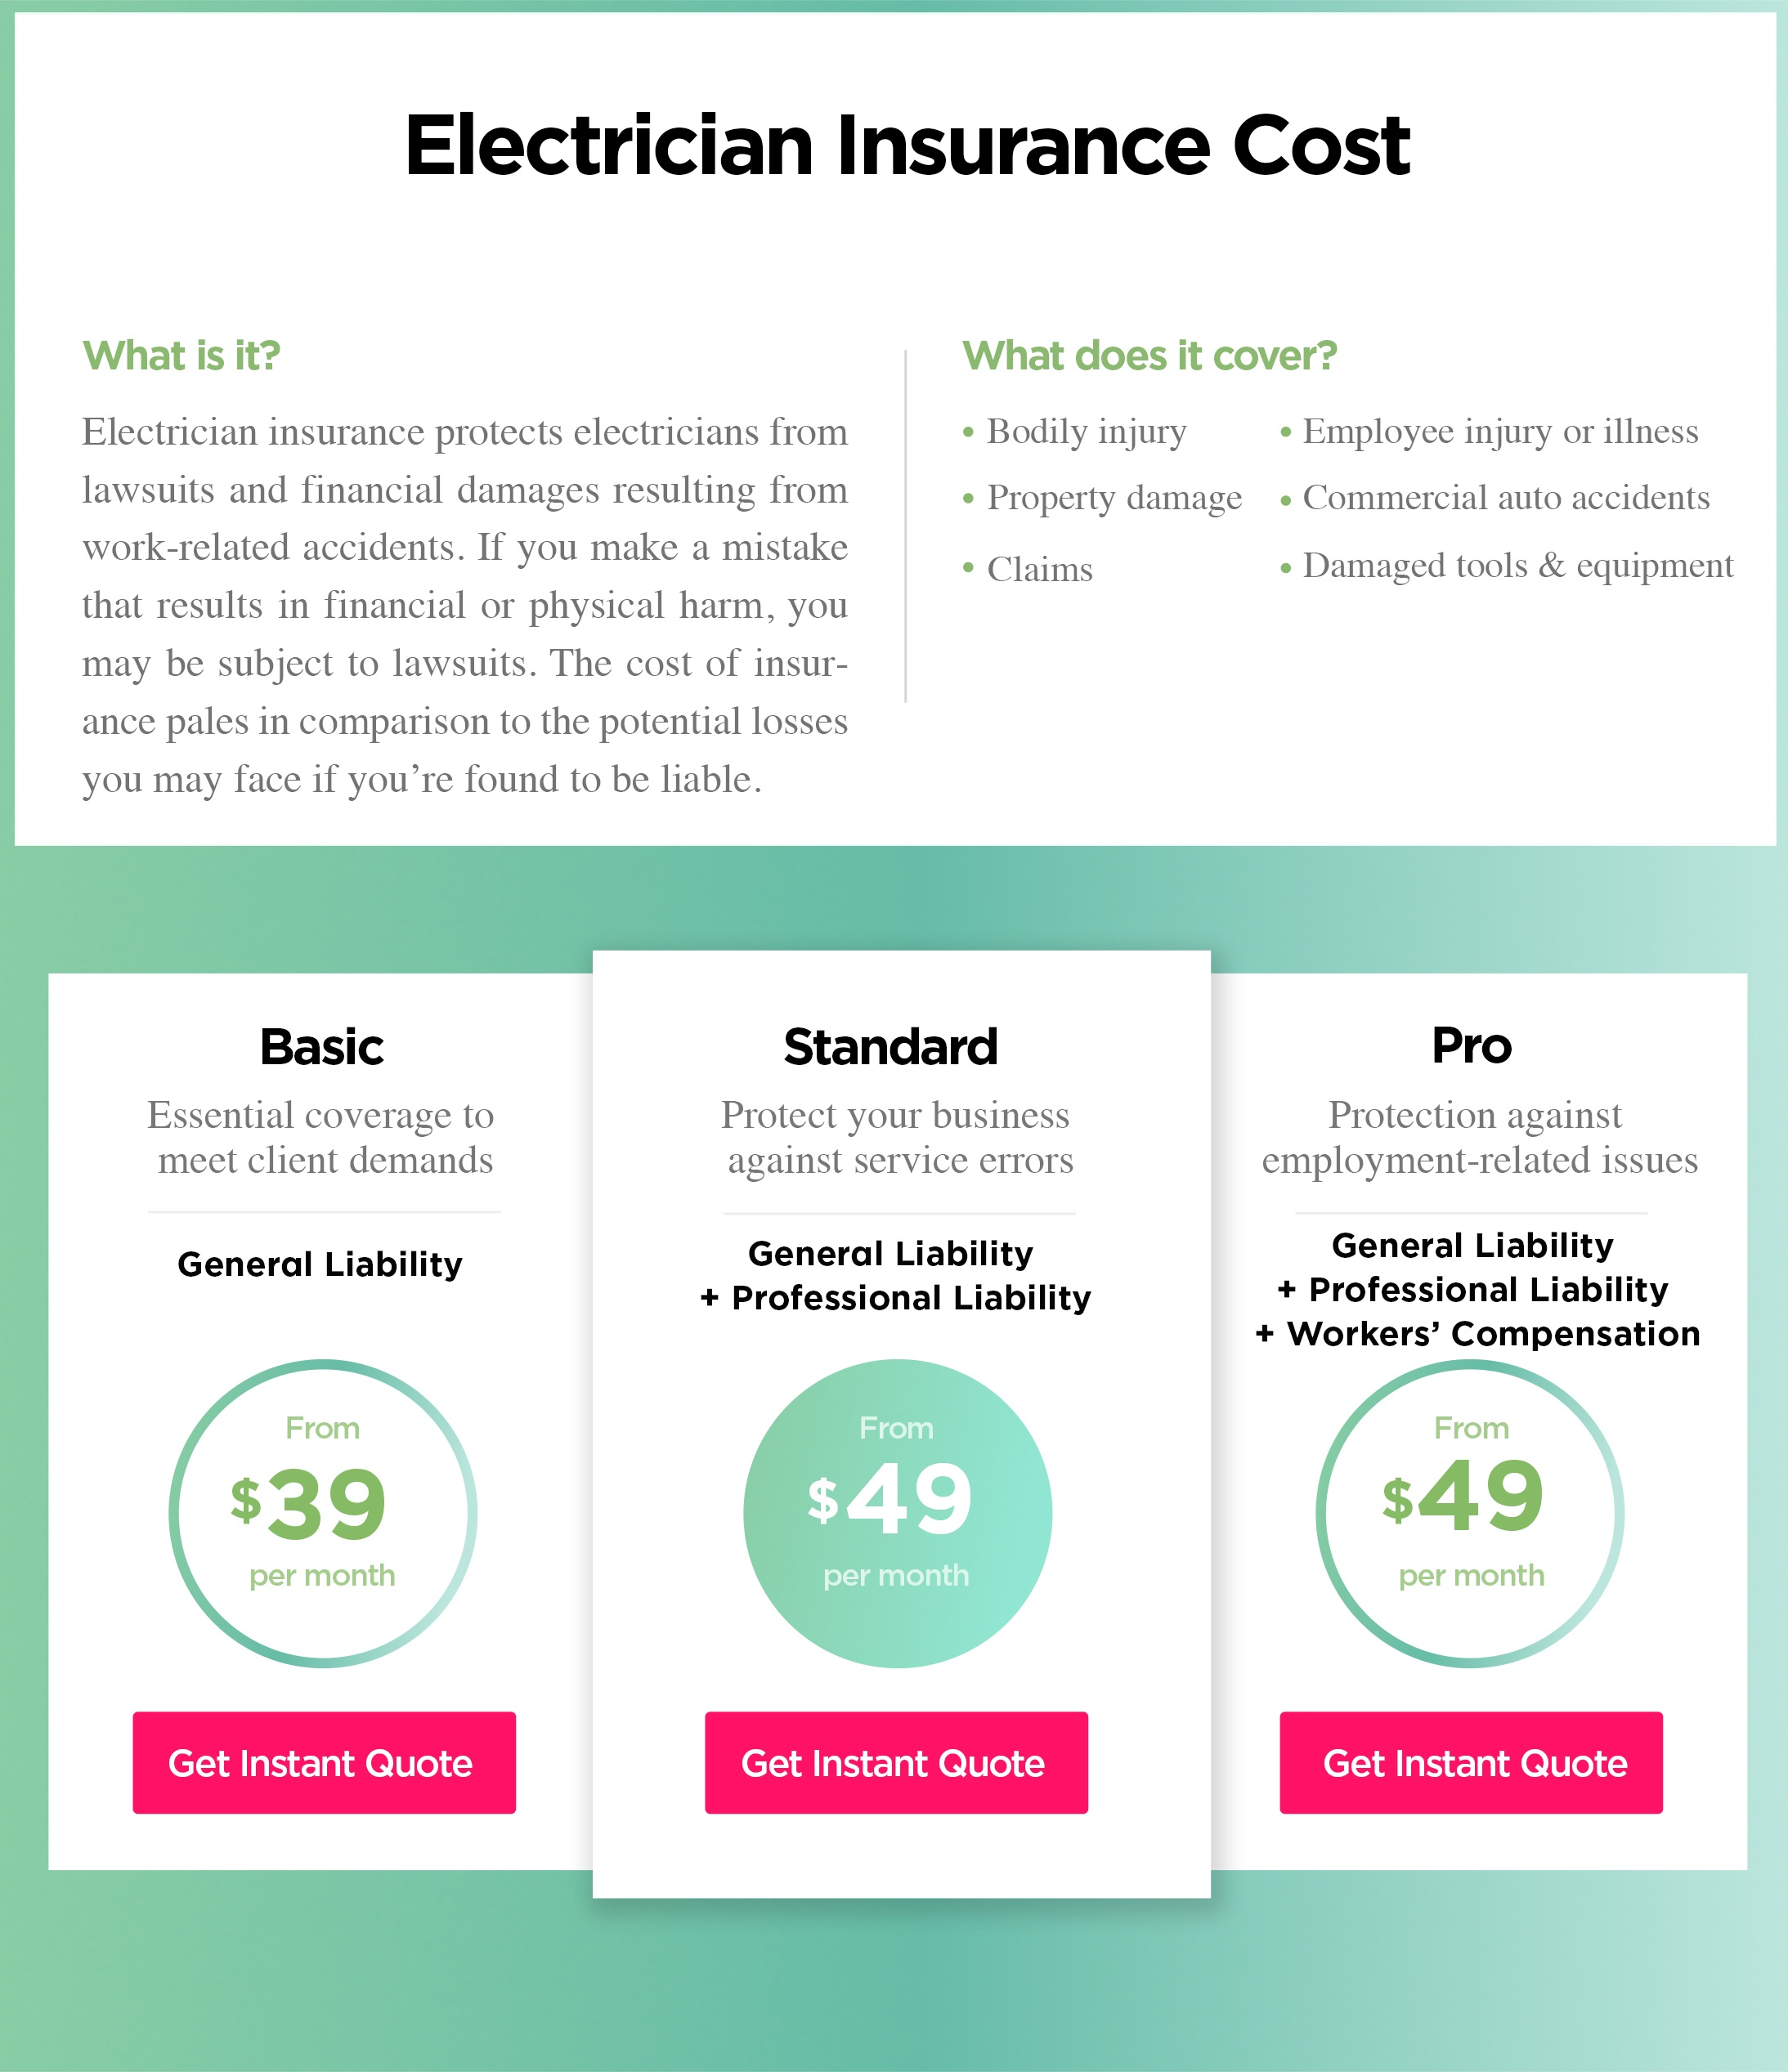 Electrician Insurance Cost